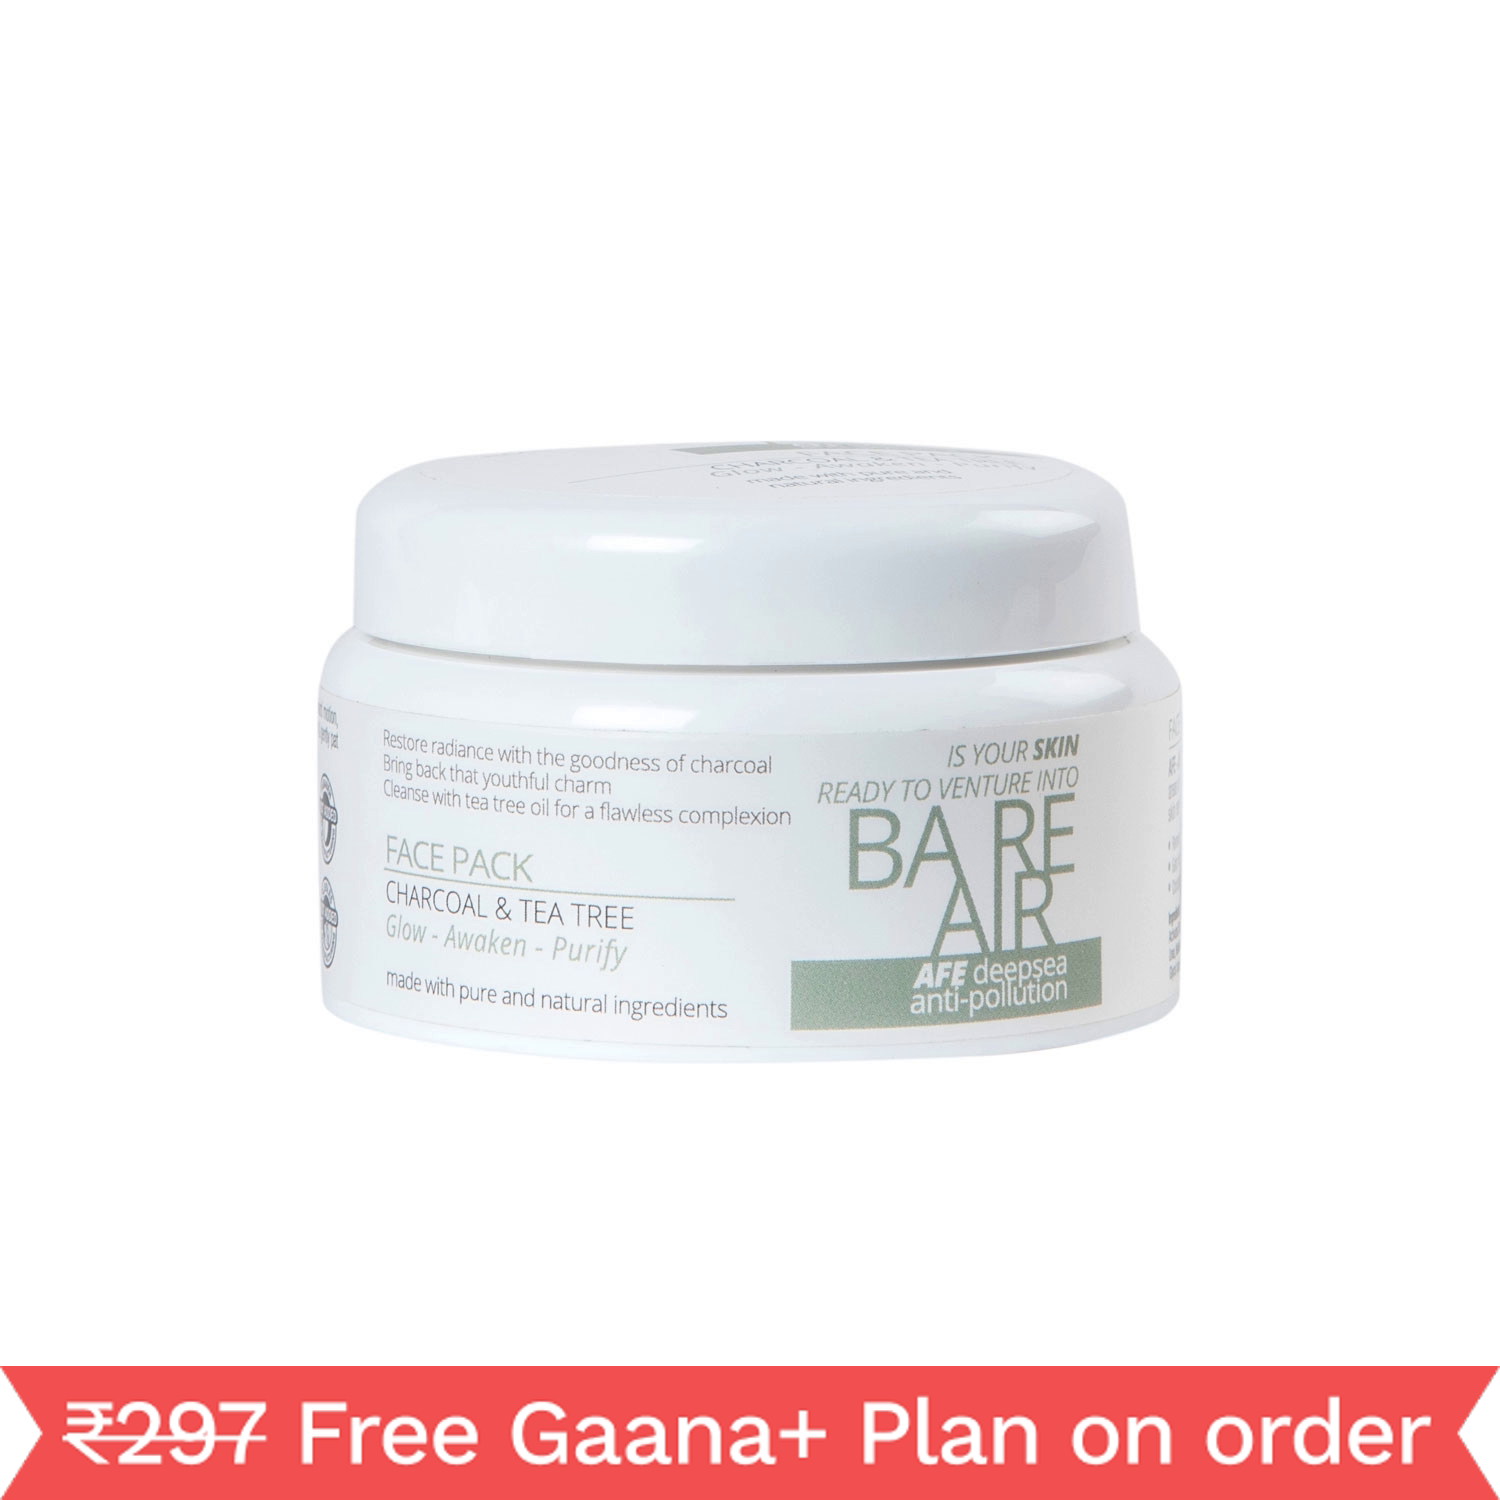 Bare Air Charcoal & Tea Tree Clay Face Pack, 120g